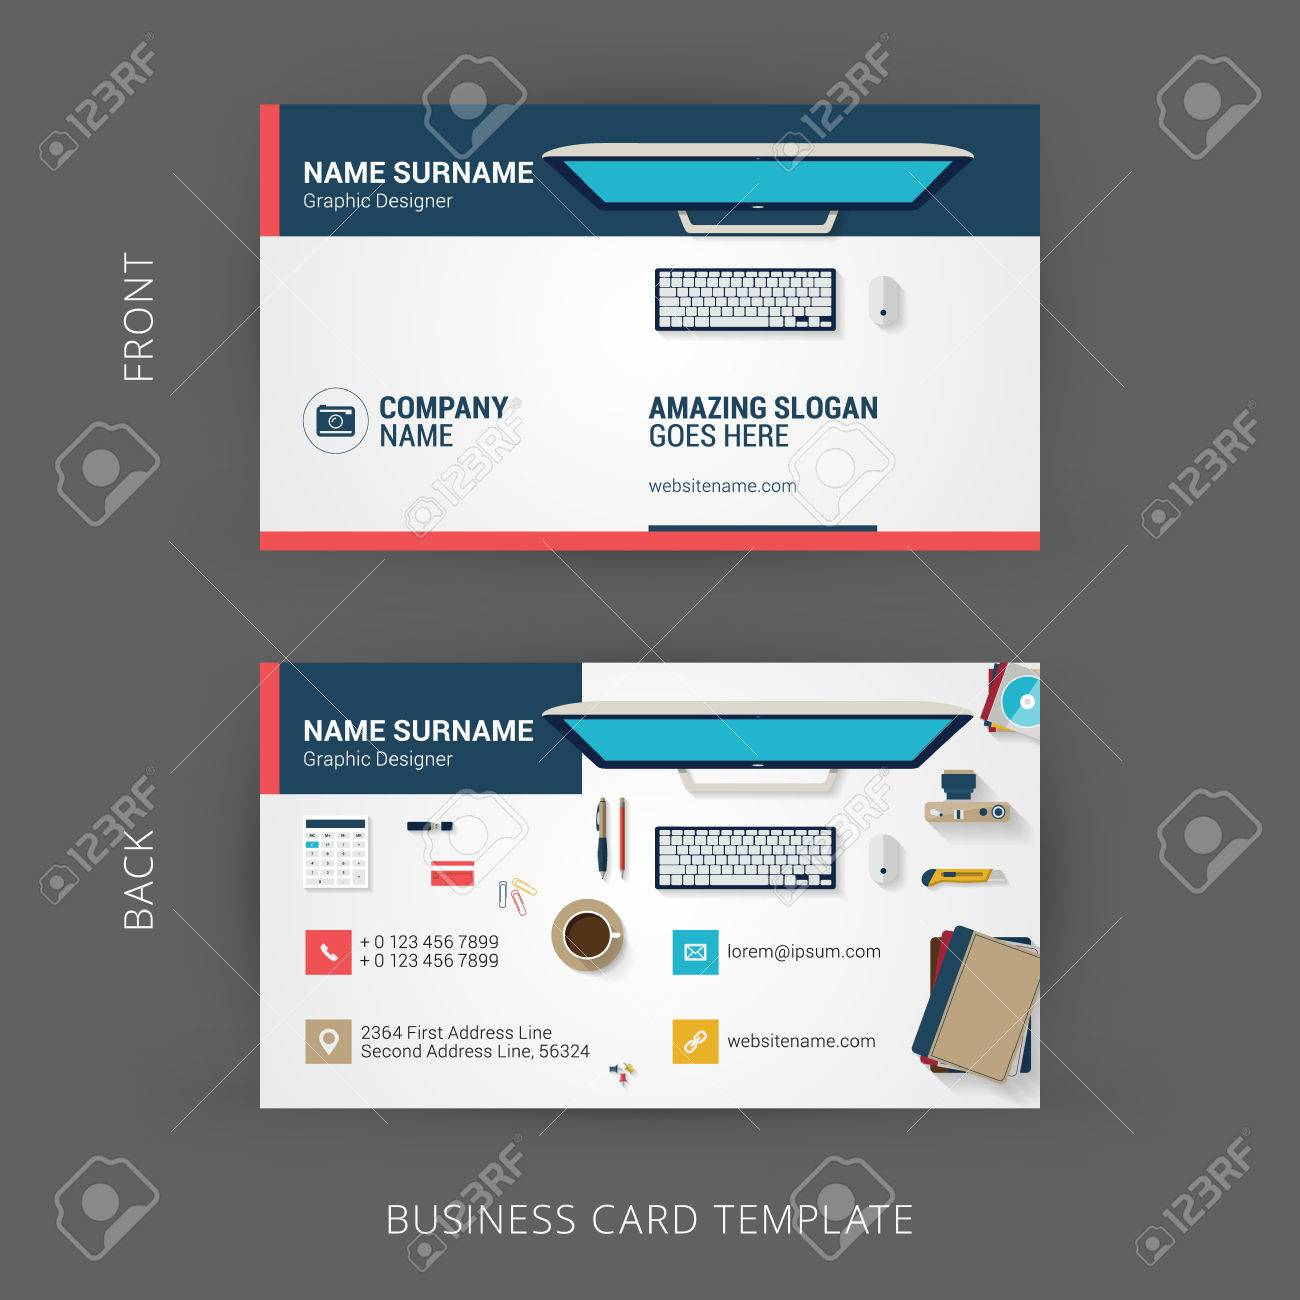 creative and clean business card template with flat design illustration of office workspace stock vector